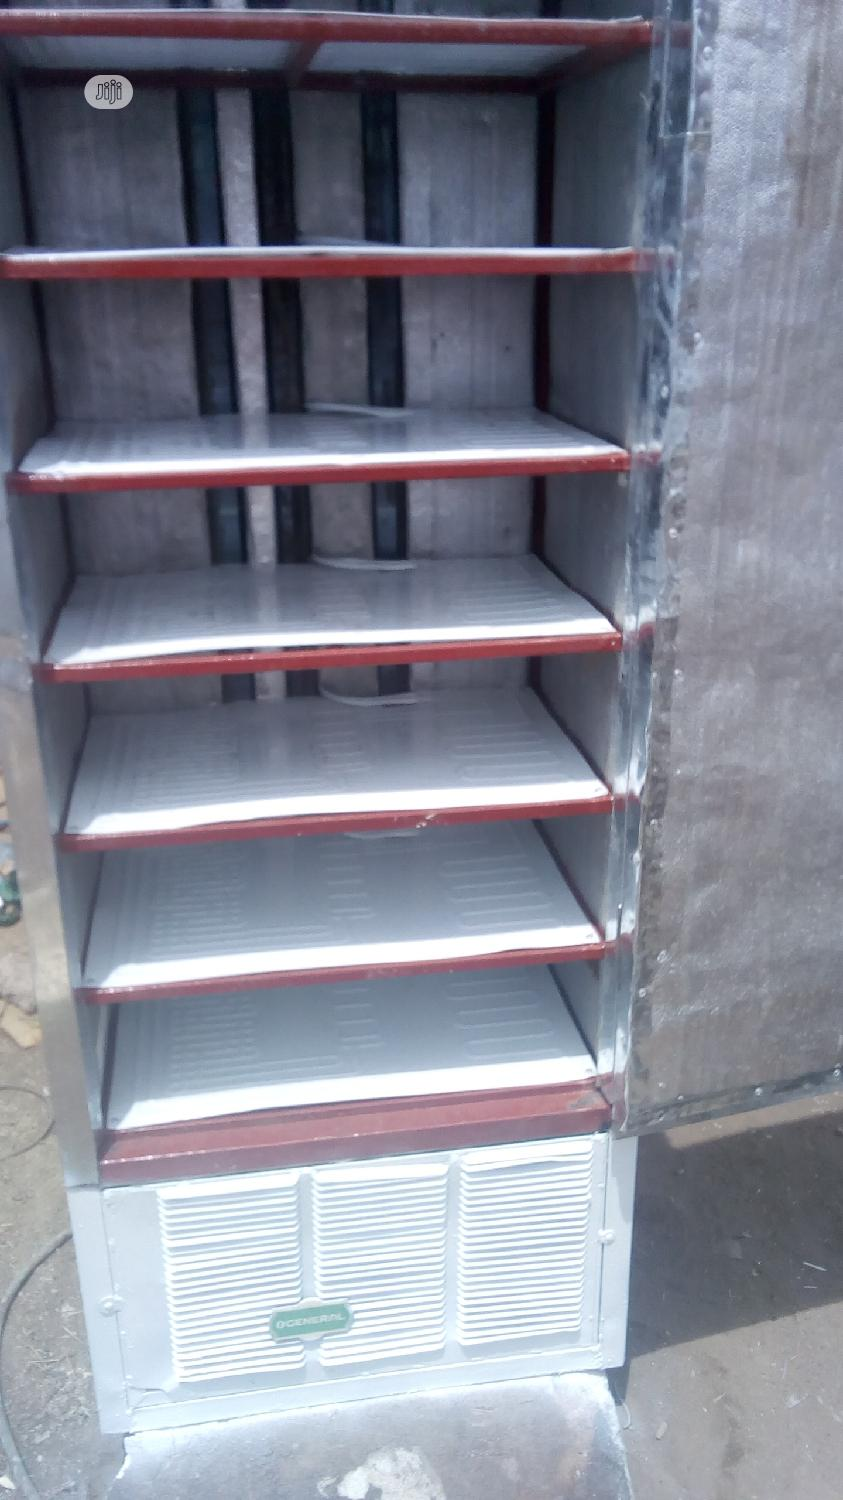 Iceblock Making Machines   Restaurant & Catering Equipment for sale in Central Business Dis, Abuja (FCT) State, Nigeria